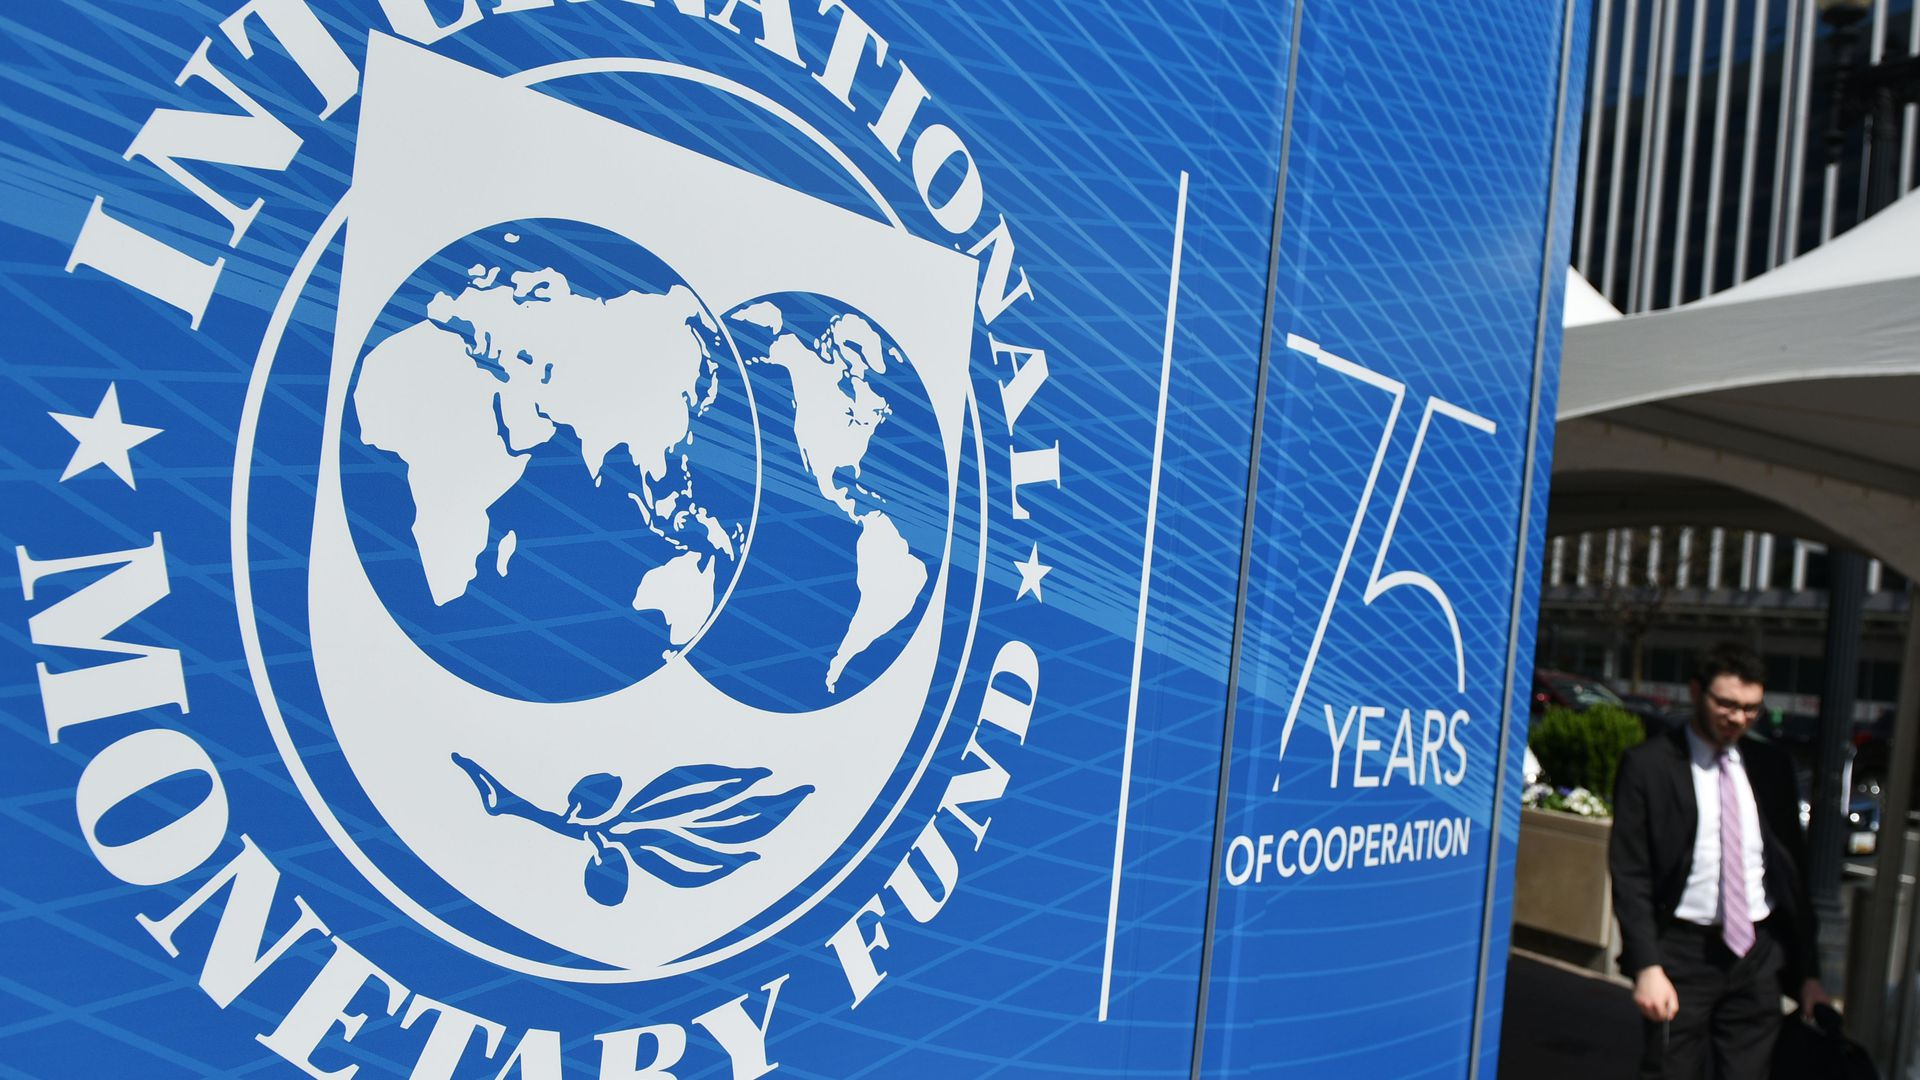 The seal of the International Monetary Fund(IMF) is seen outside of the headquarters building in Washington, DC on April 8, 2019.